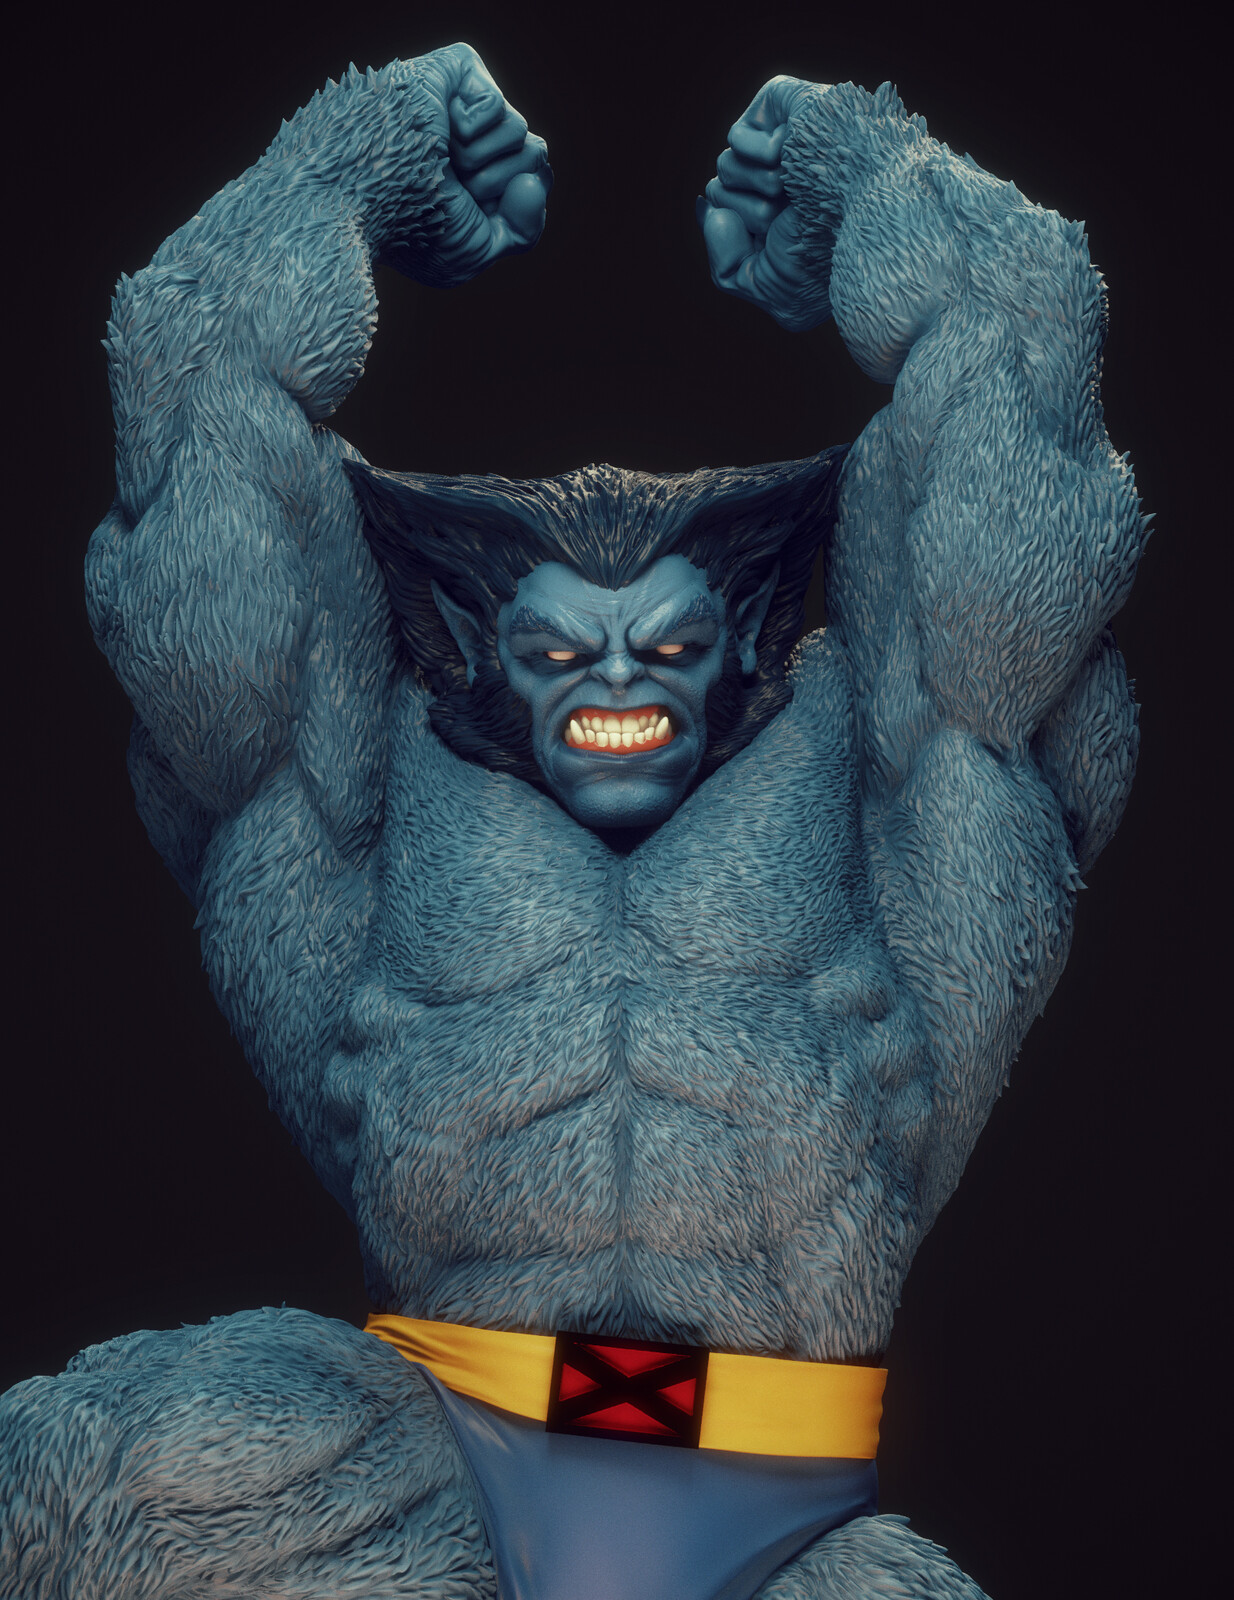 Big angry blue dude